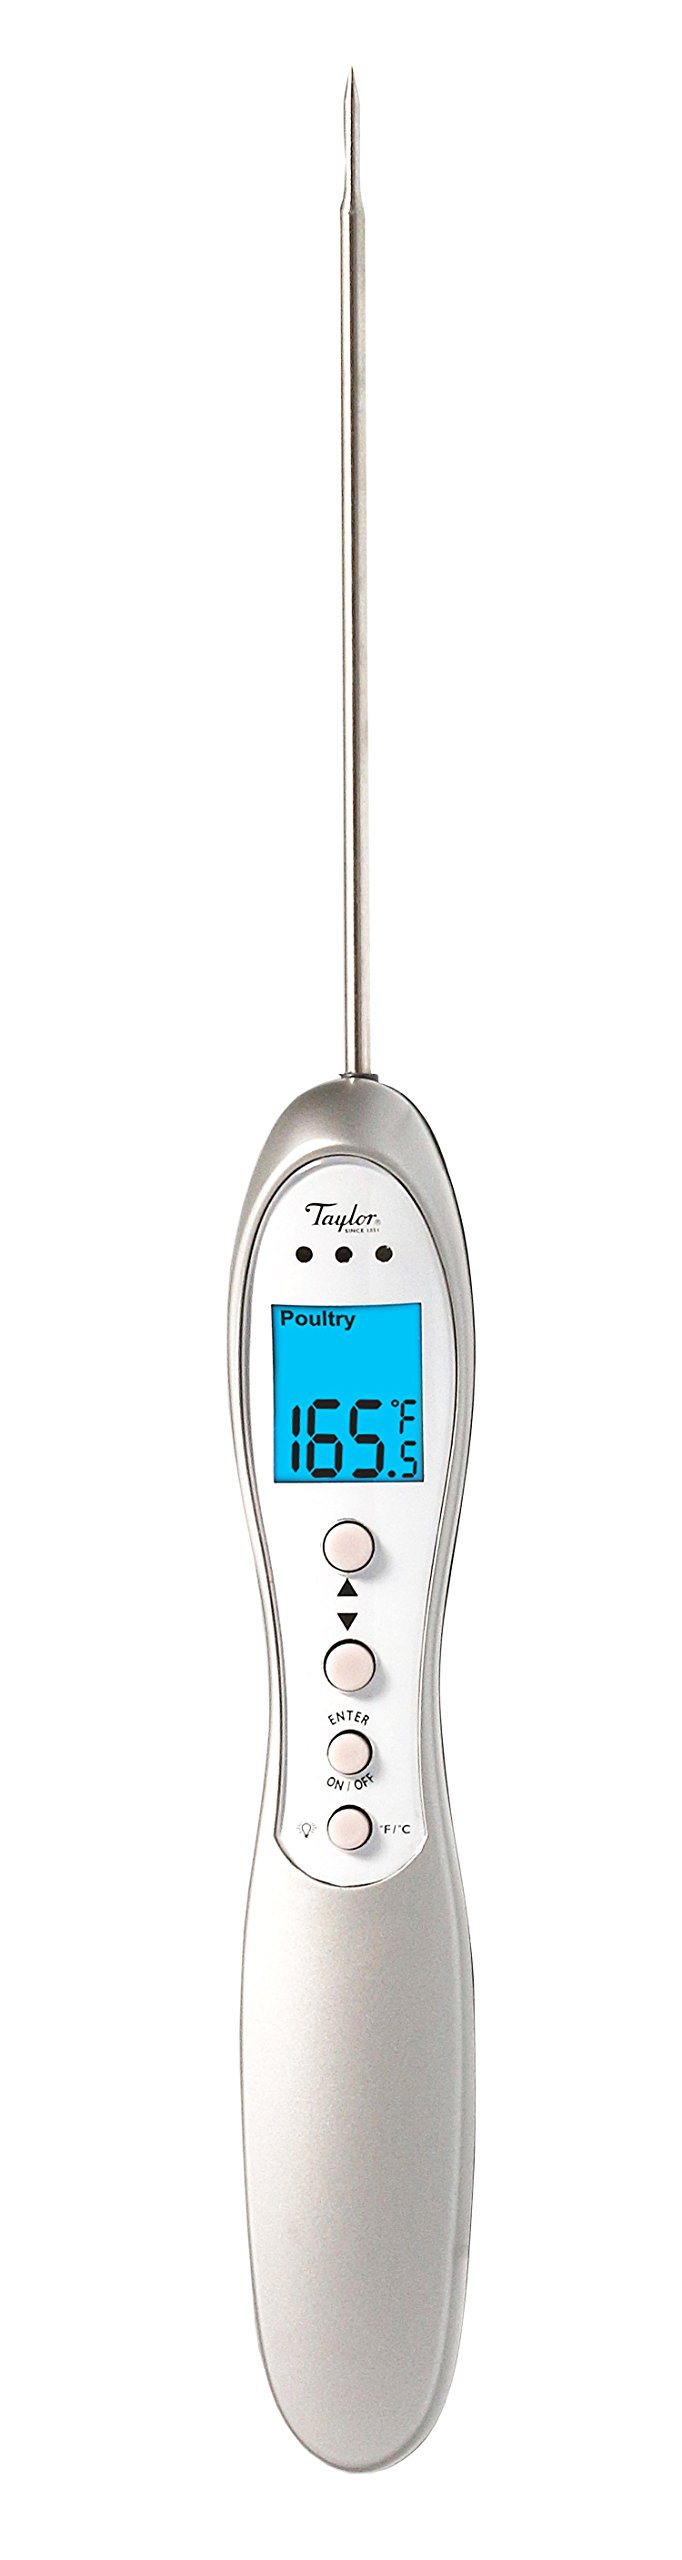 Taylor Precision Products Connoisseur Digital Folding Probe Thermometer by Taylor Precision Products